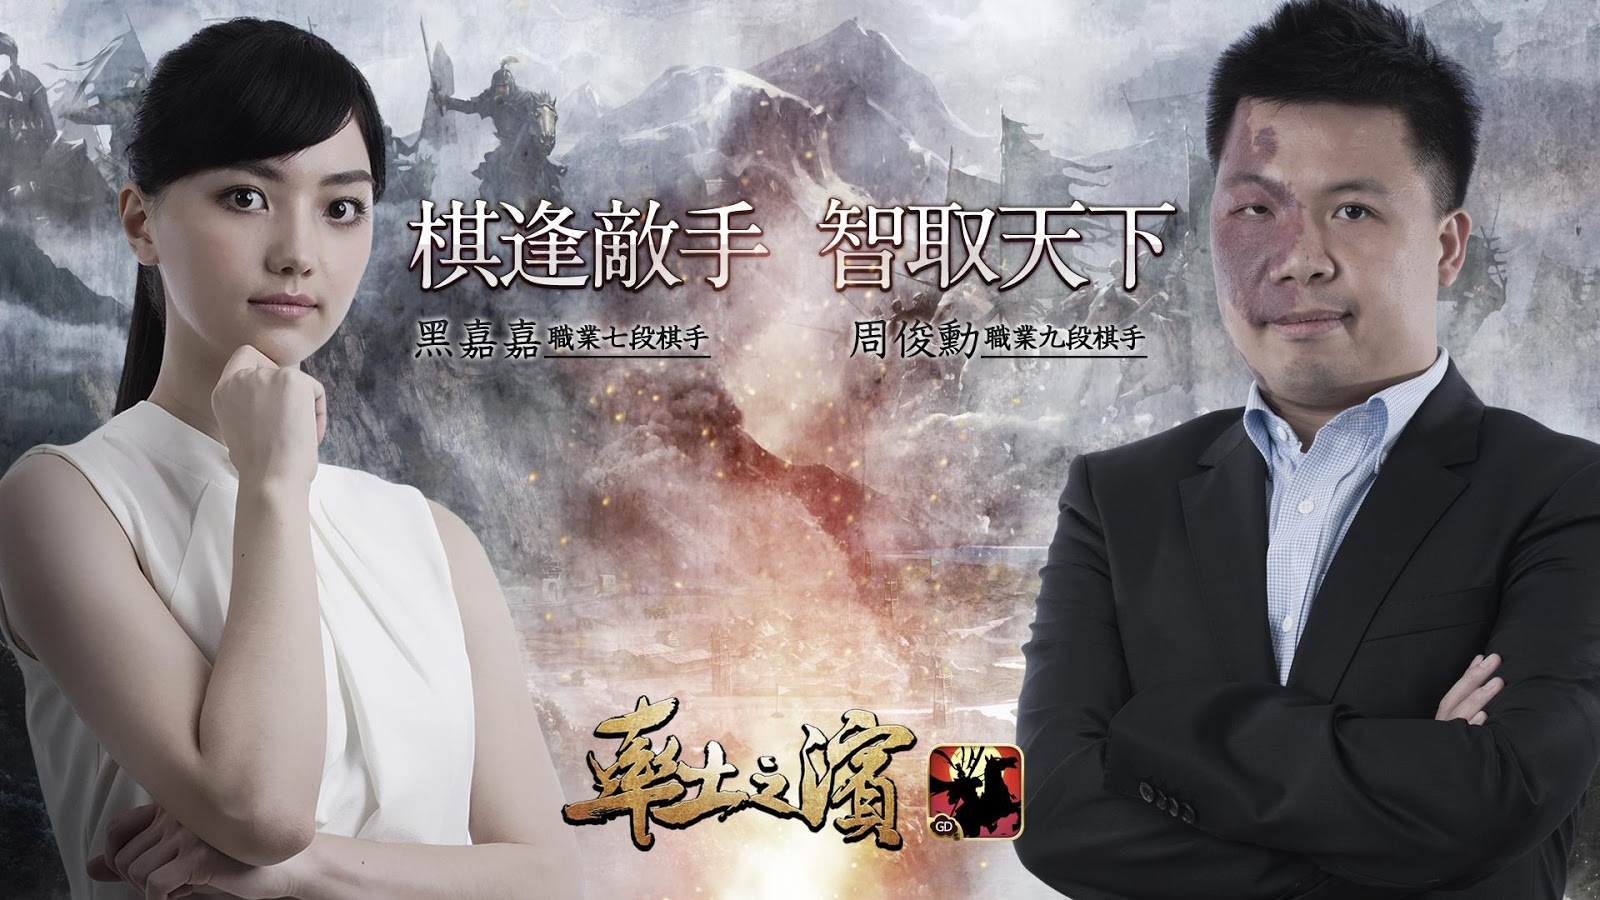 率土之濱-棋逢敵手 智取天下 Screenshot 12